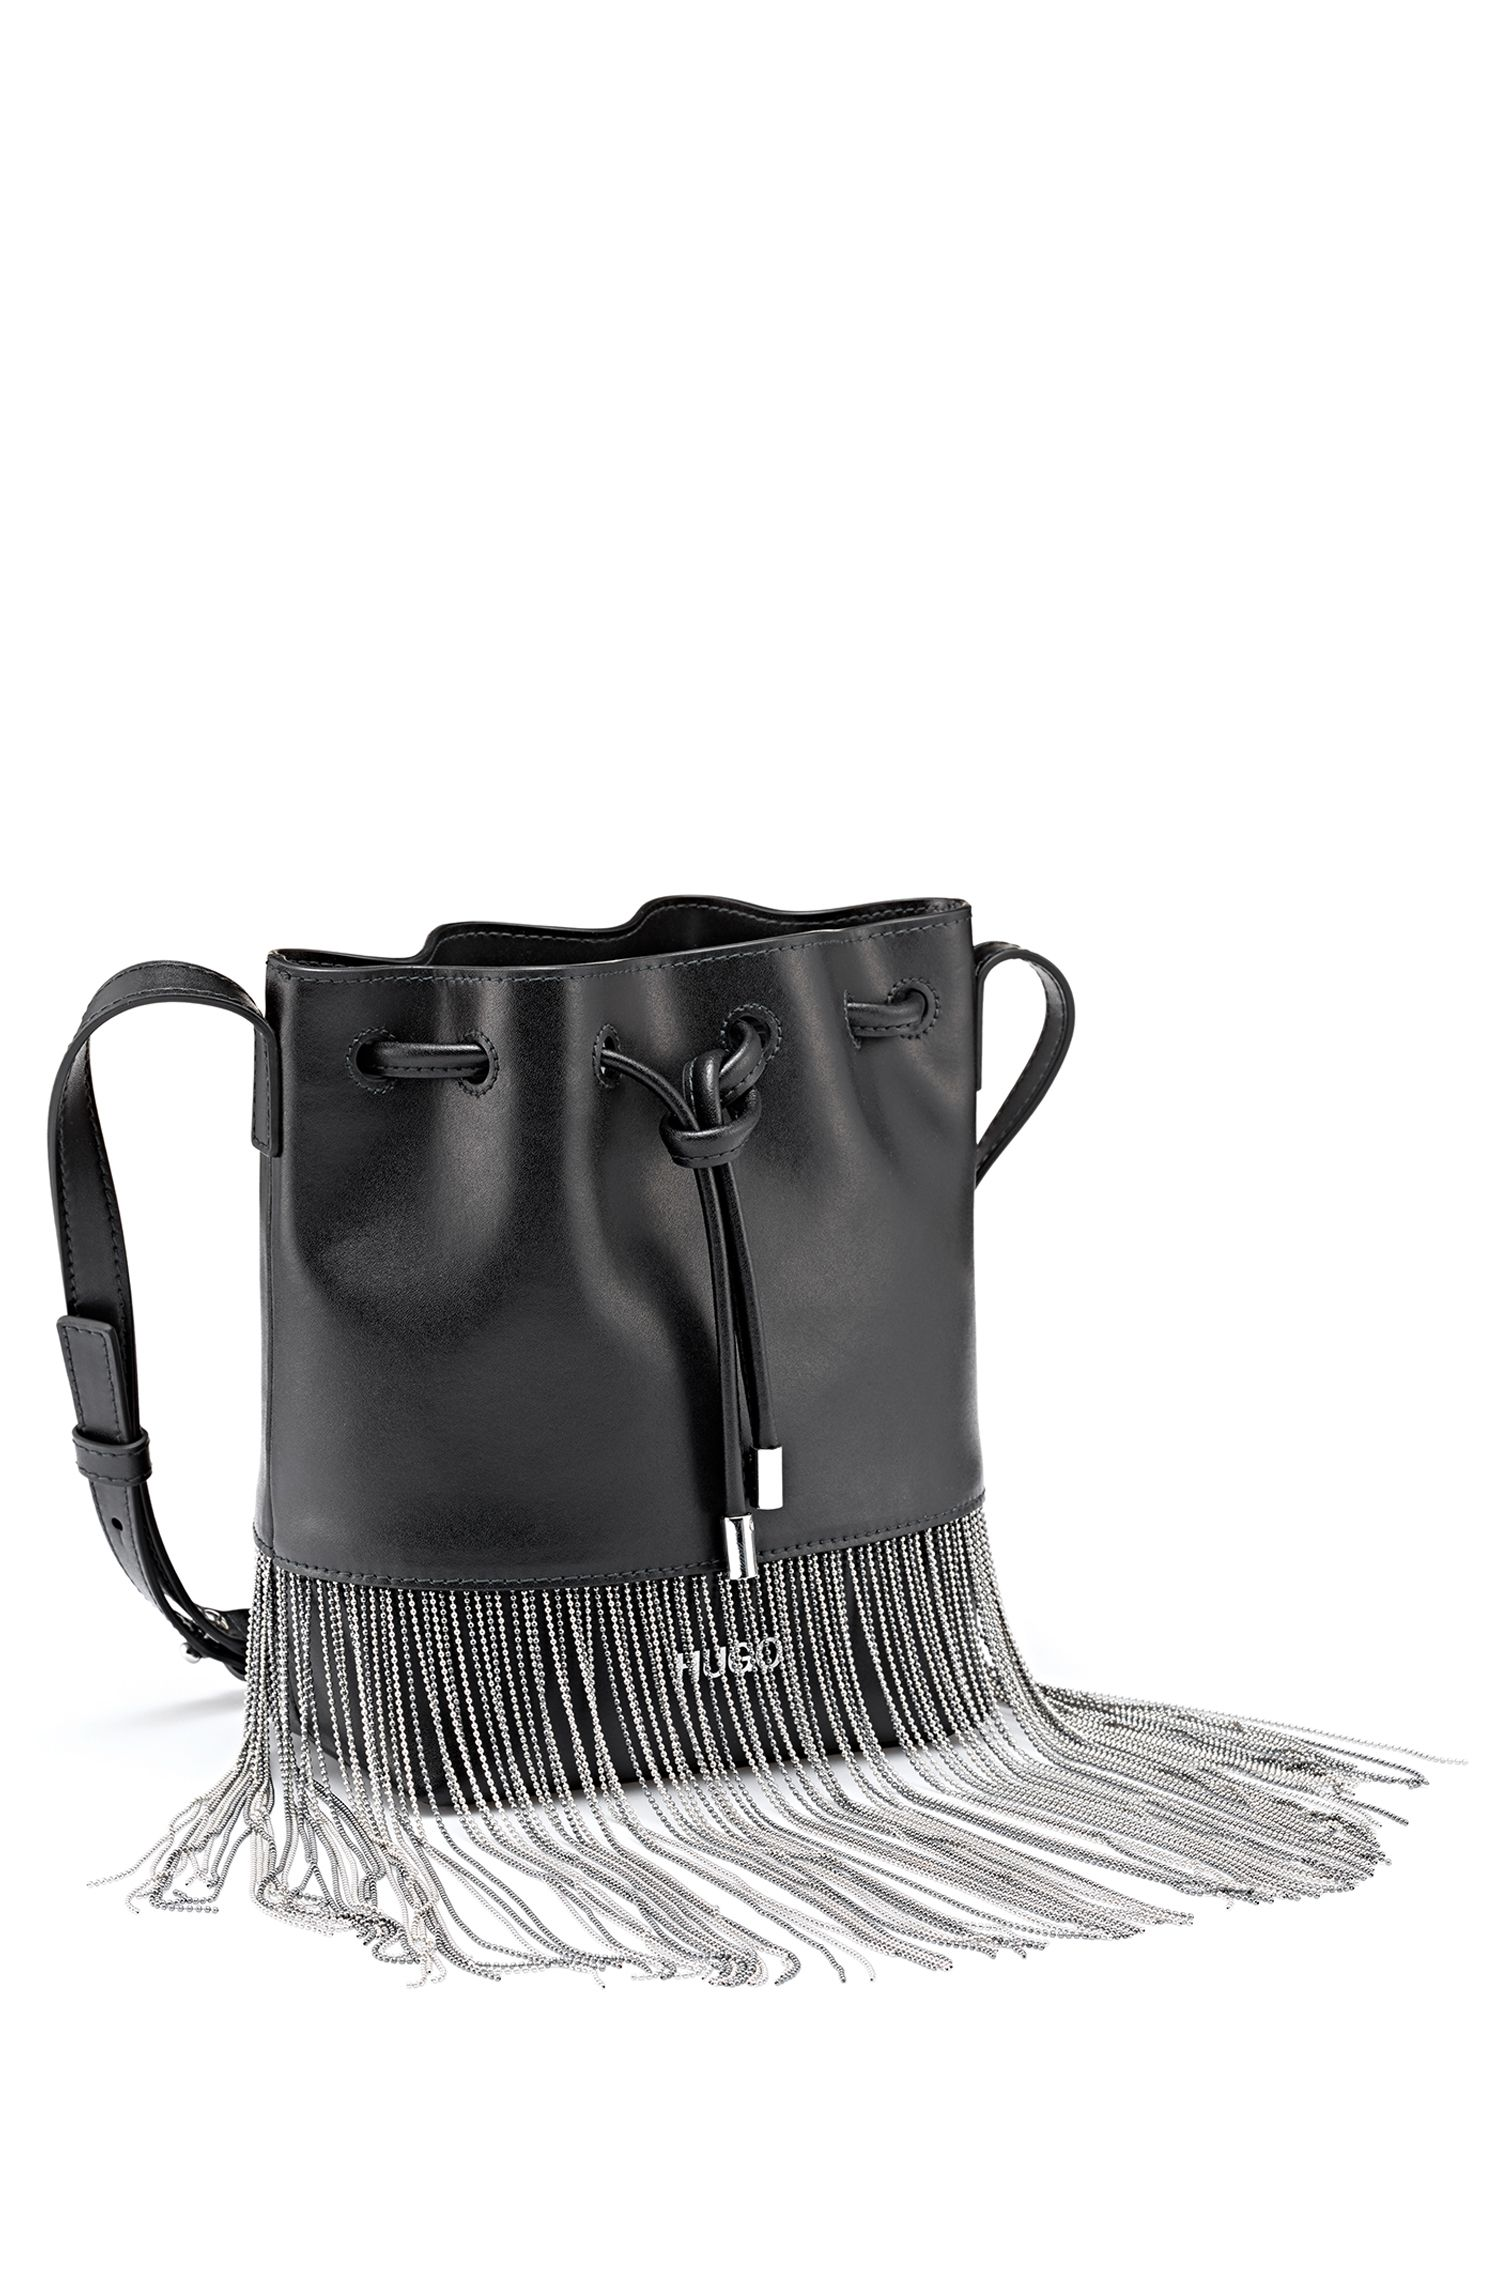 Drawstring bucket bag in Italian leather with ball-chain fringing, Black